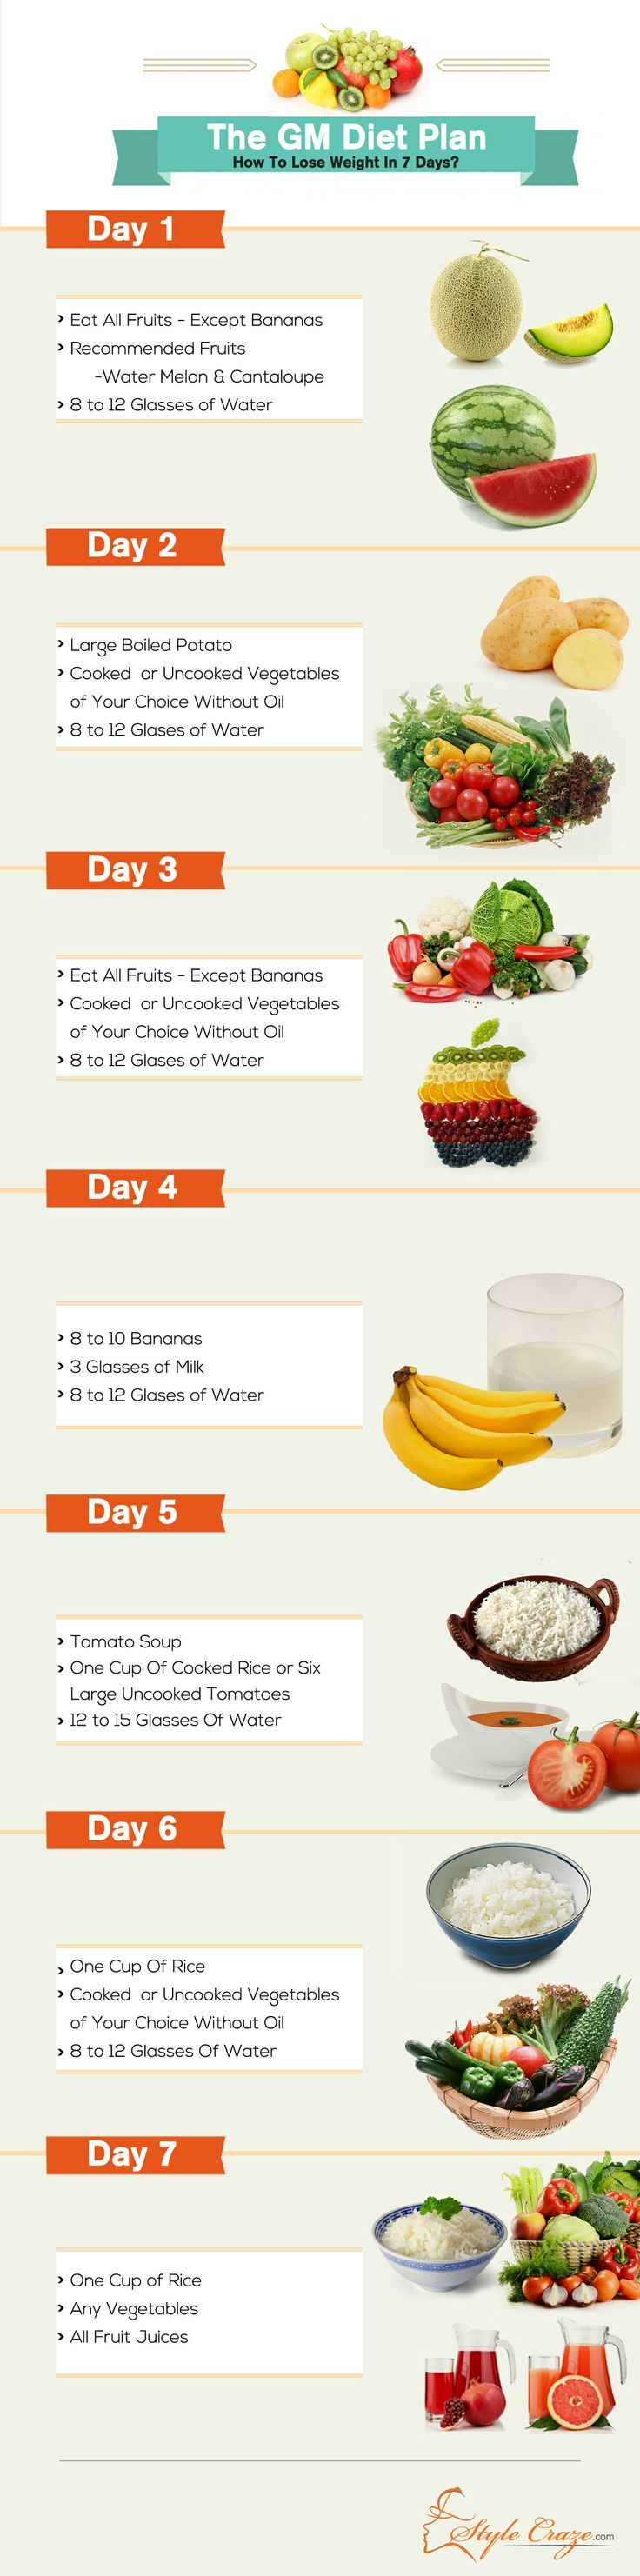 The Gm Diet Plan How To Lose Weight In Just 7 Days Gm Diet Plans